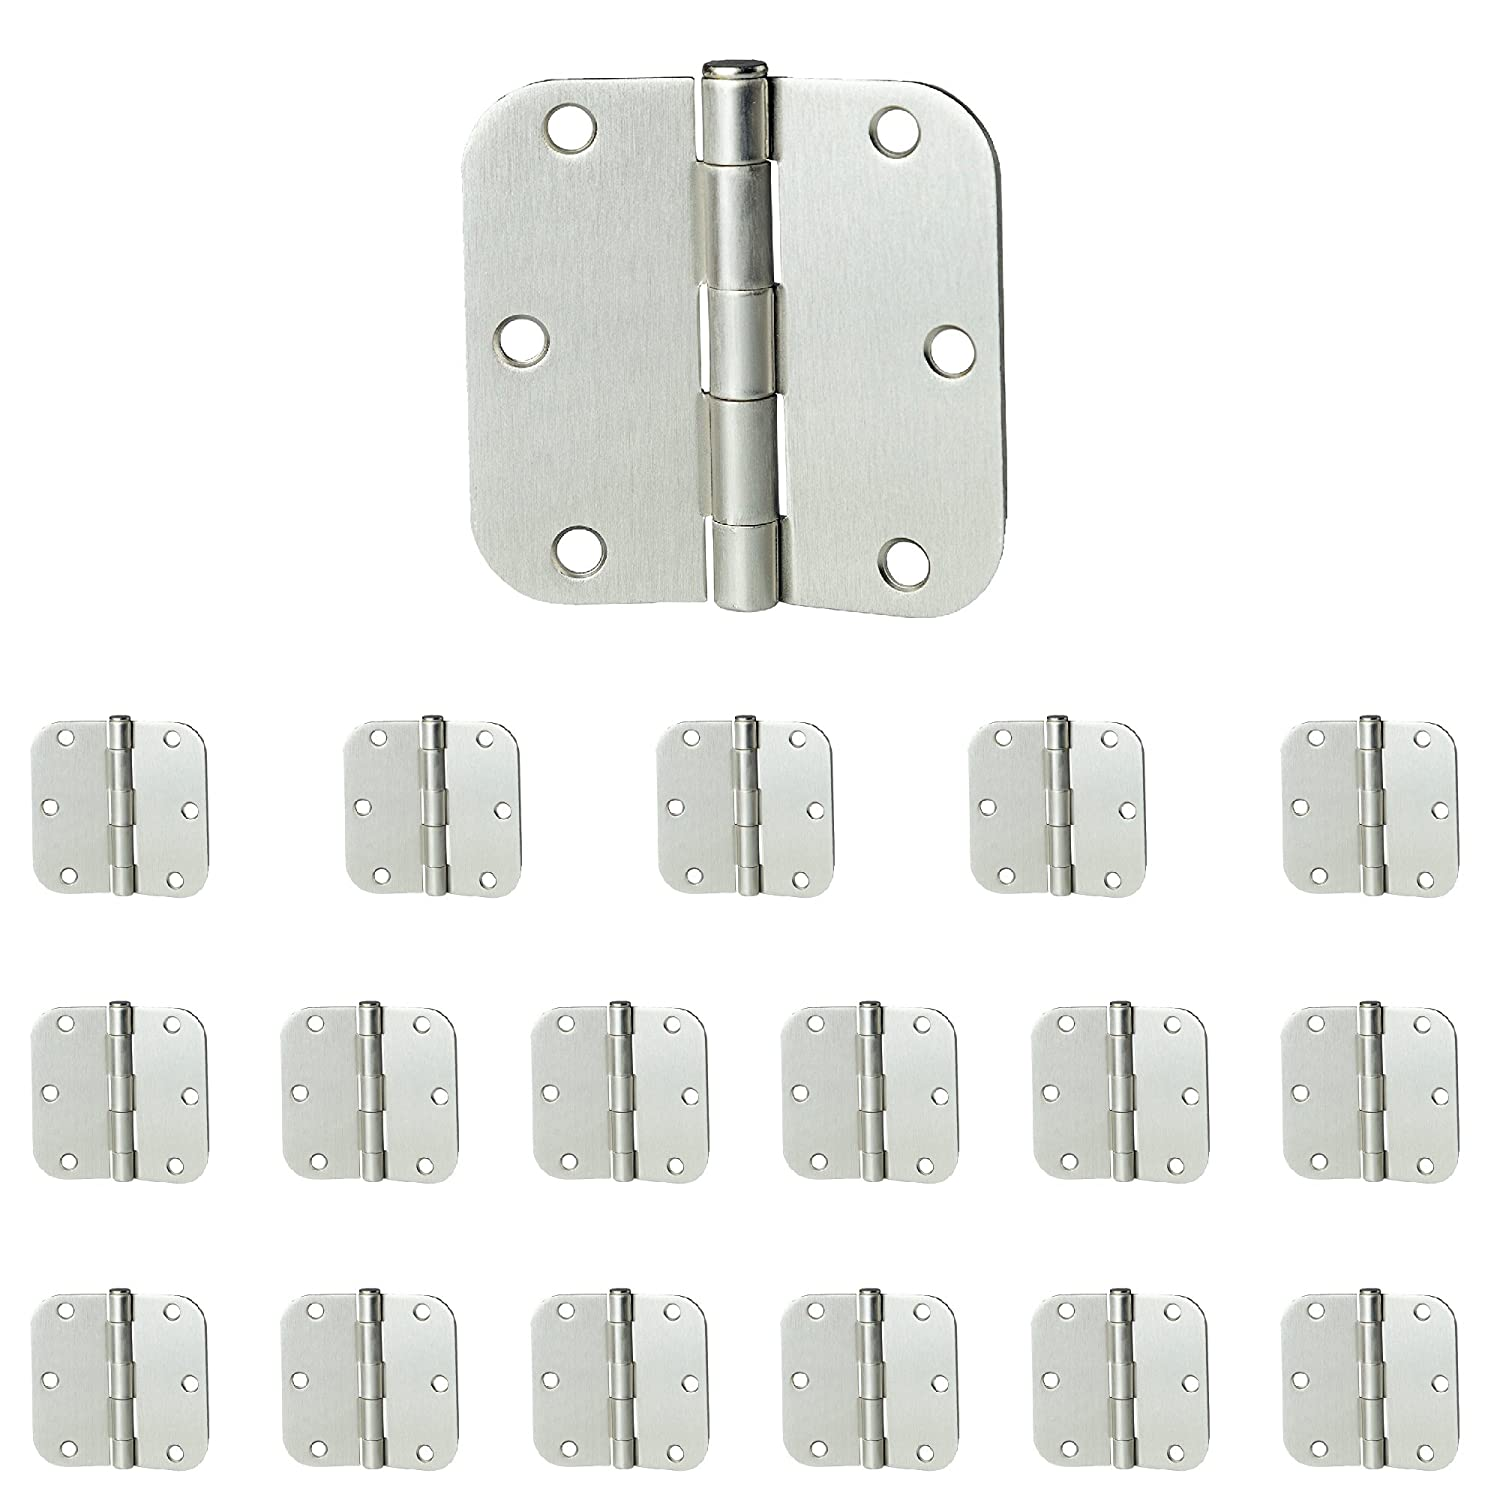 "18 Pack of Door Hinges Satin Nickel - 3.5"" x 3.5"" Inch Interior Hinges for Doors Brushed Nickel with 5/8"" Radius Corners"